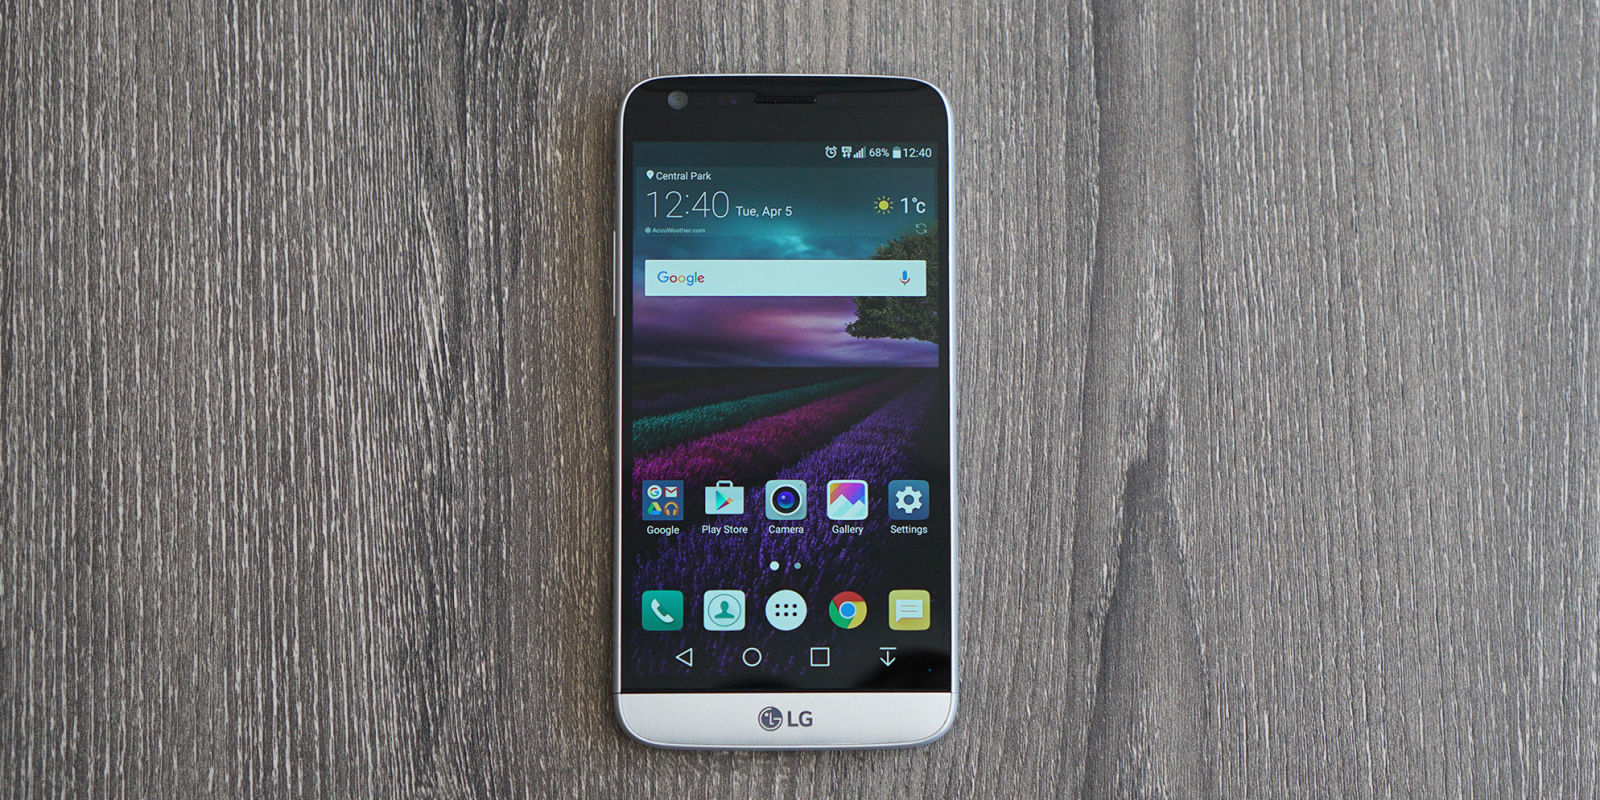 lg g5 specs full smartphone review 2018. Black Bedroom Furniture Sets. Home Design Ideas